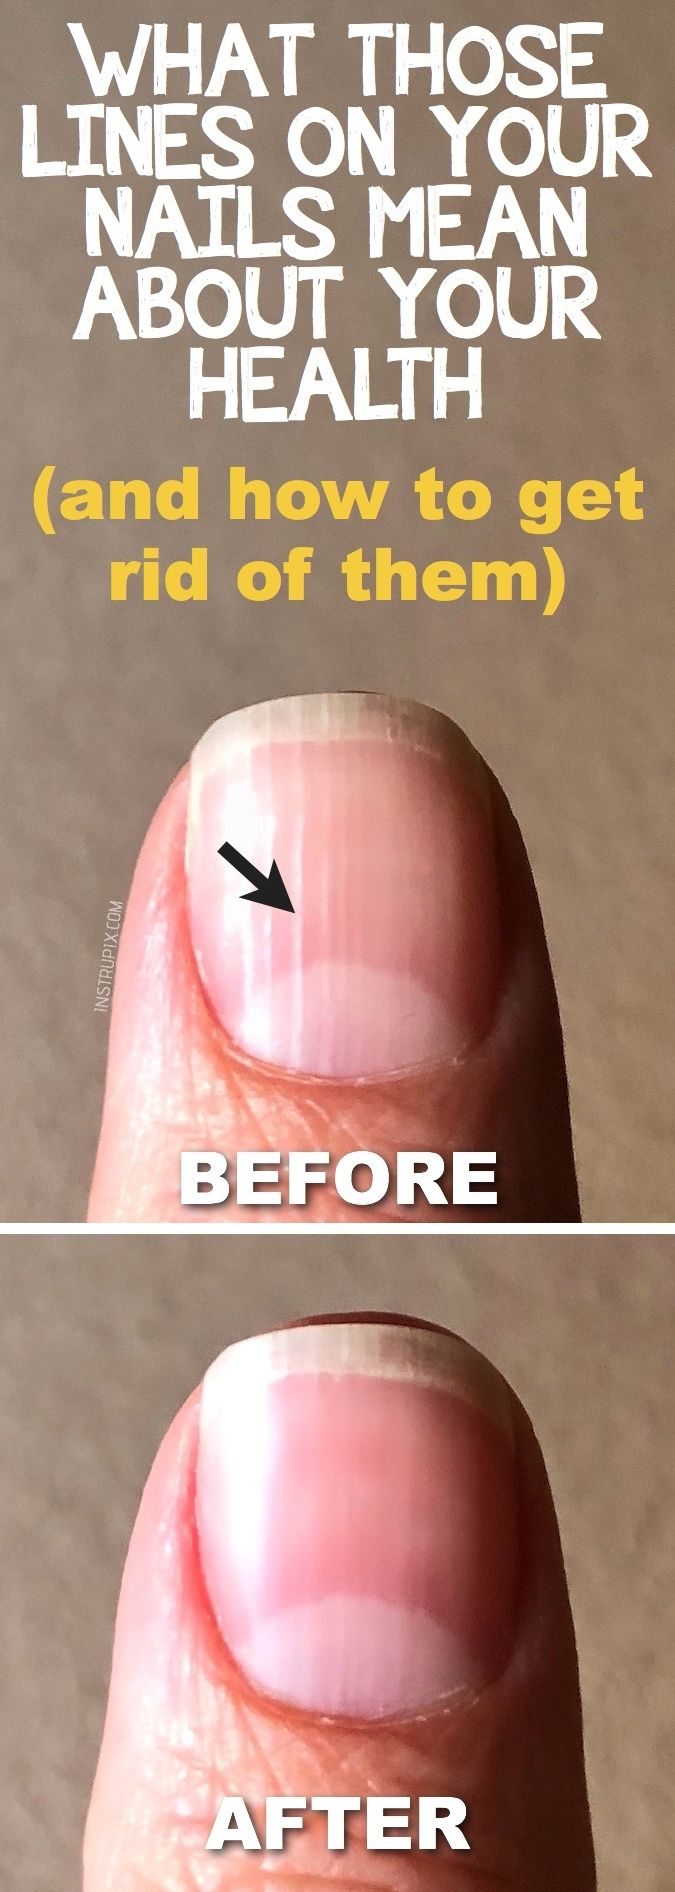 What are those vertical lines on your nails, and what it means about your health? Don't forget about those hands! This is a useful beauty hack every girl should know. Instrupix.com